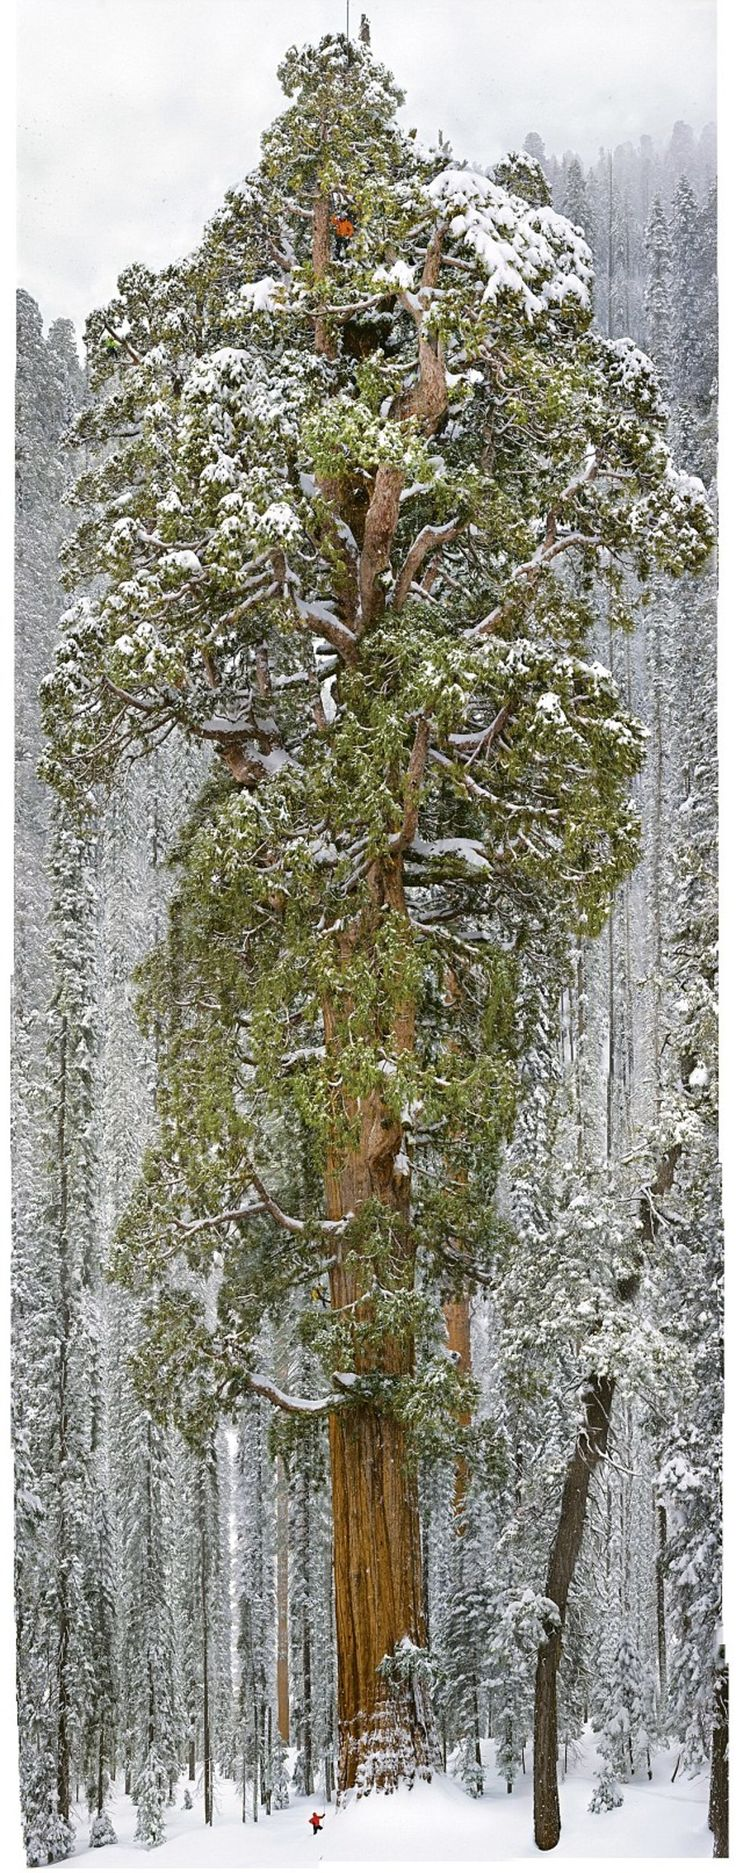 This 3,200 Year Old Tree Is So Massive... It's Never Been Captured In A Single Image